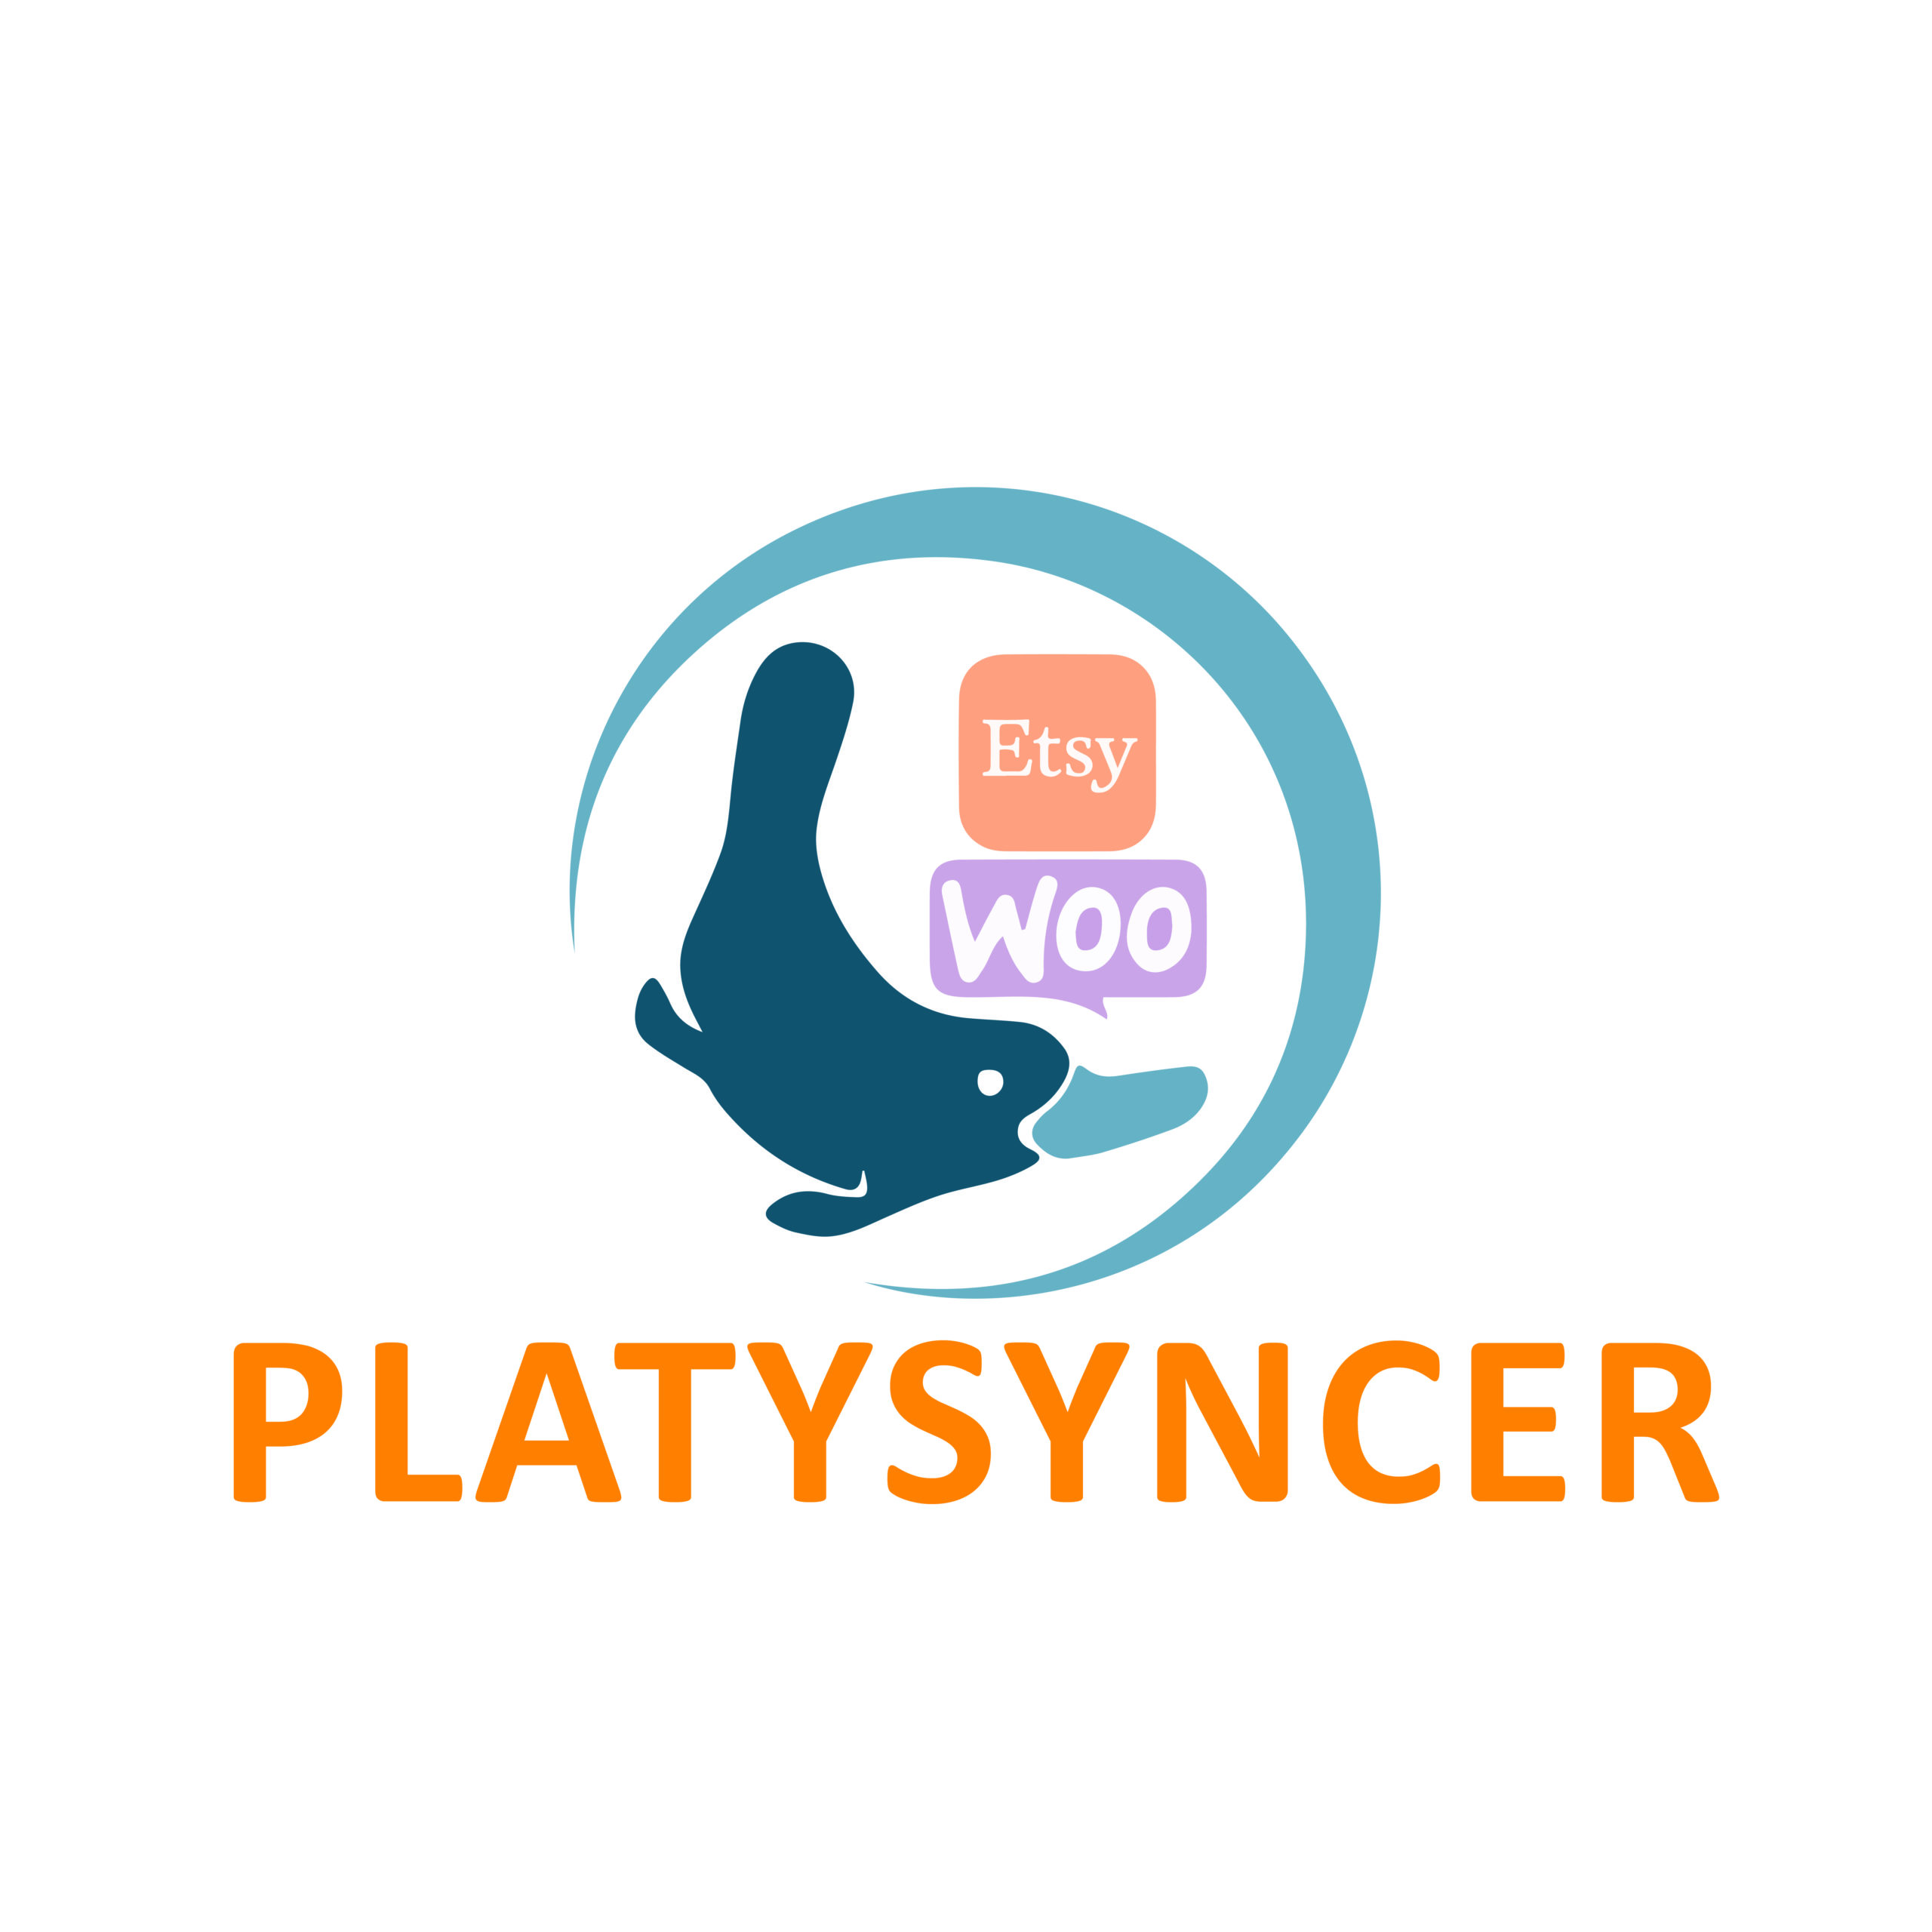 Platy Syncer for Etsy